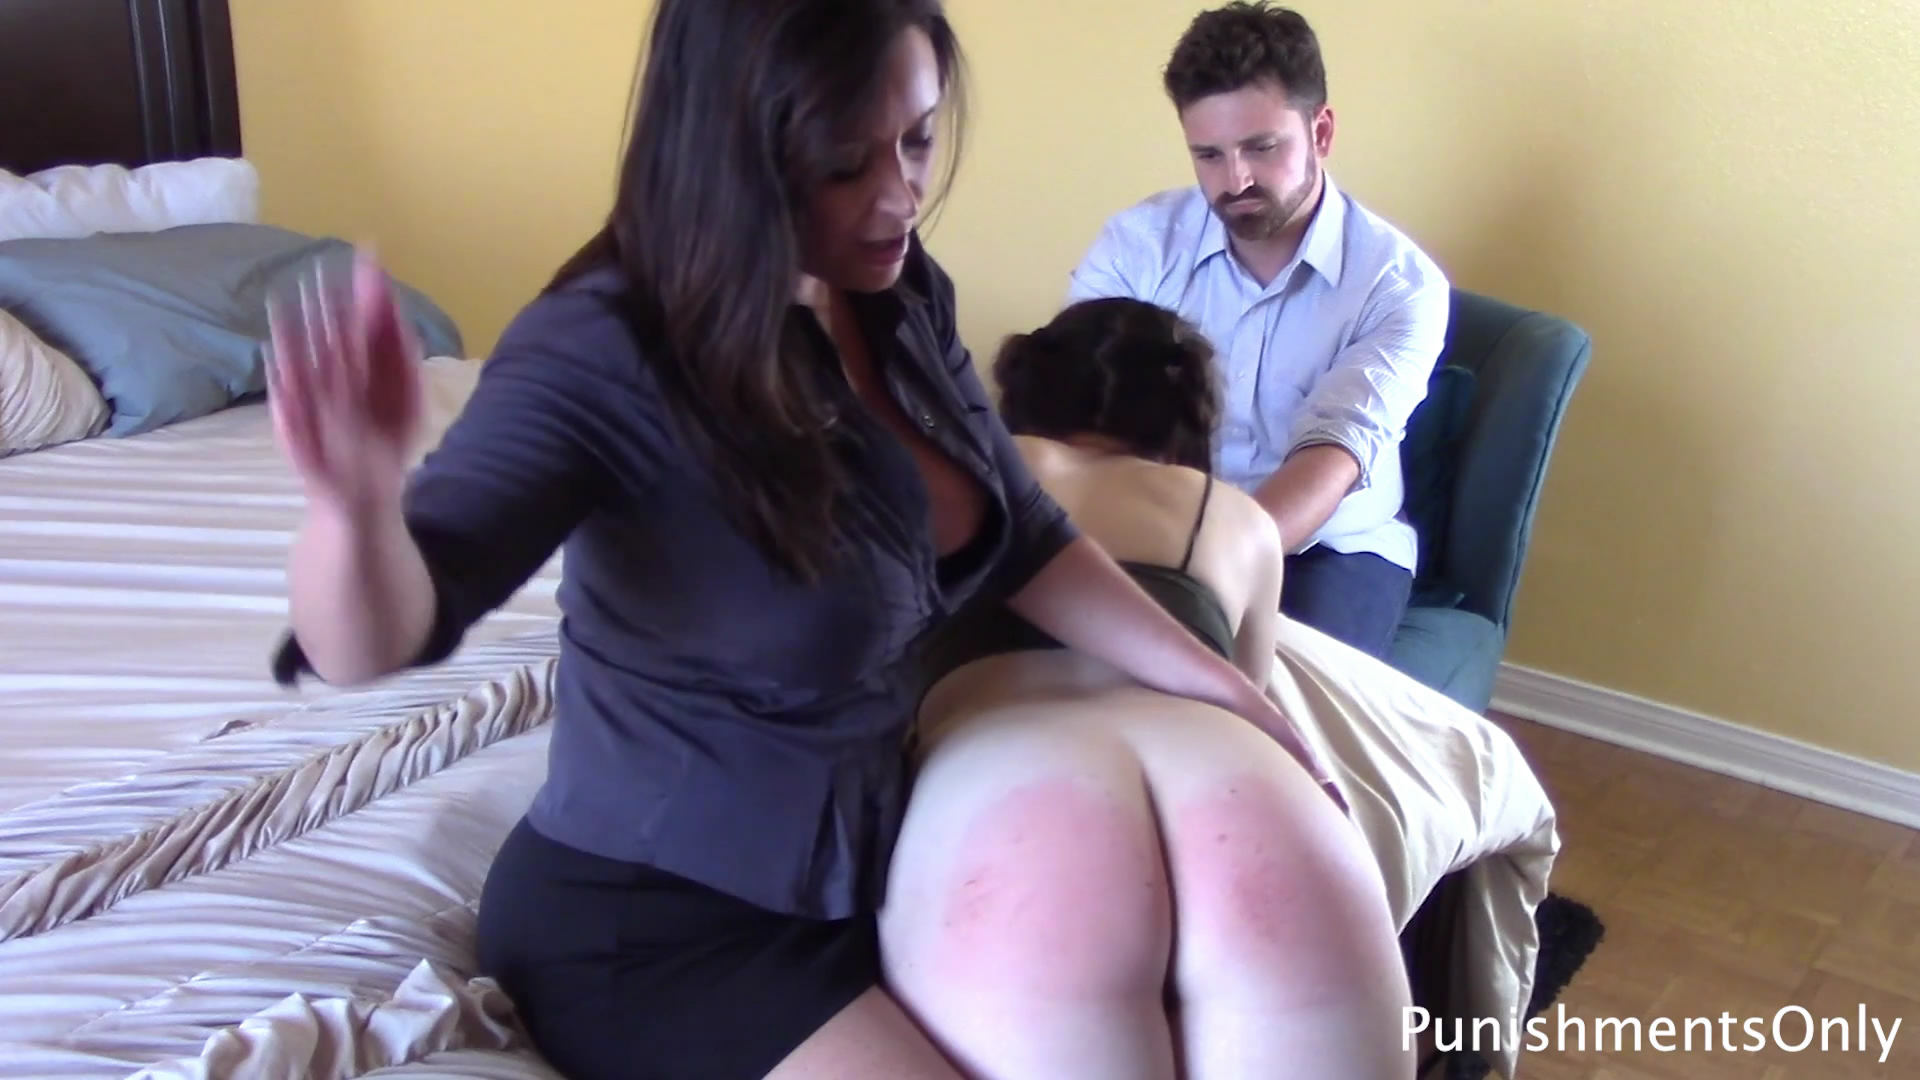 snapshot20181227112922 - Punishments Only – MP4/Full HD – Christina Carter, Luci Lovett - Spankings are not Refusable